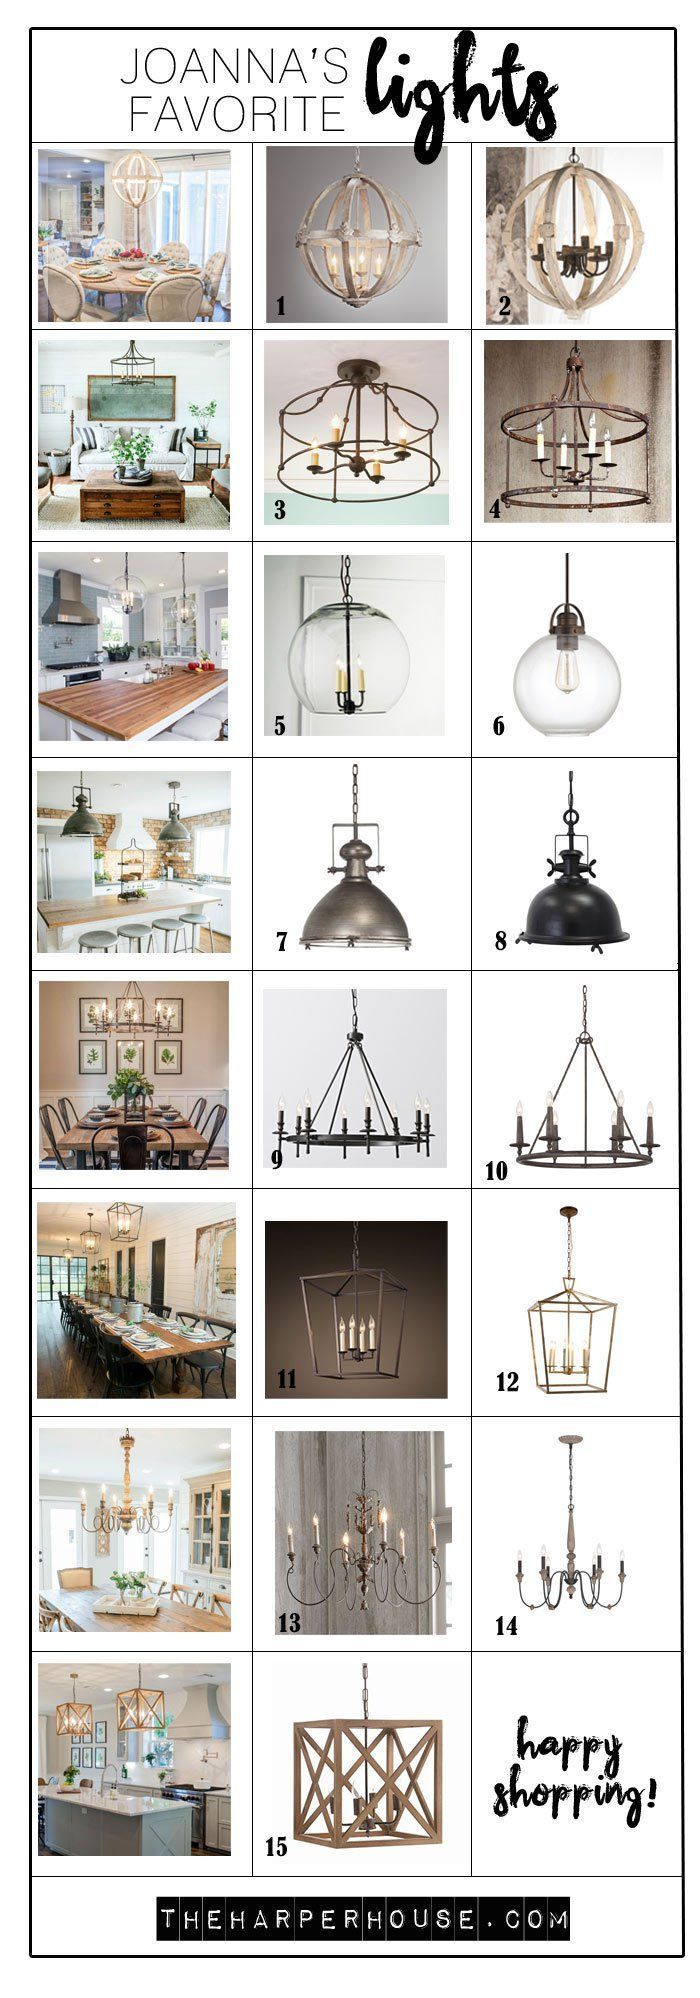 Check out these light fixtures used by Joanna Gaines on Fixer Upper. Shopping sources & links included! The Harper House